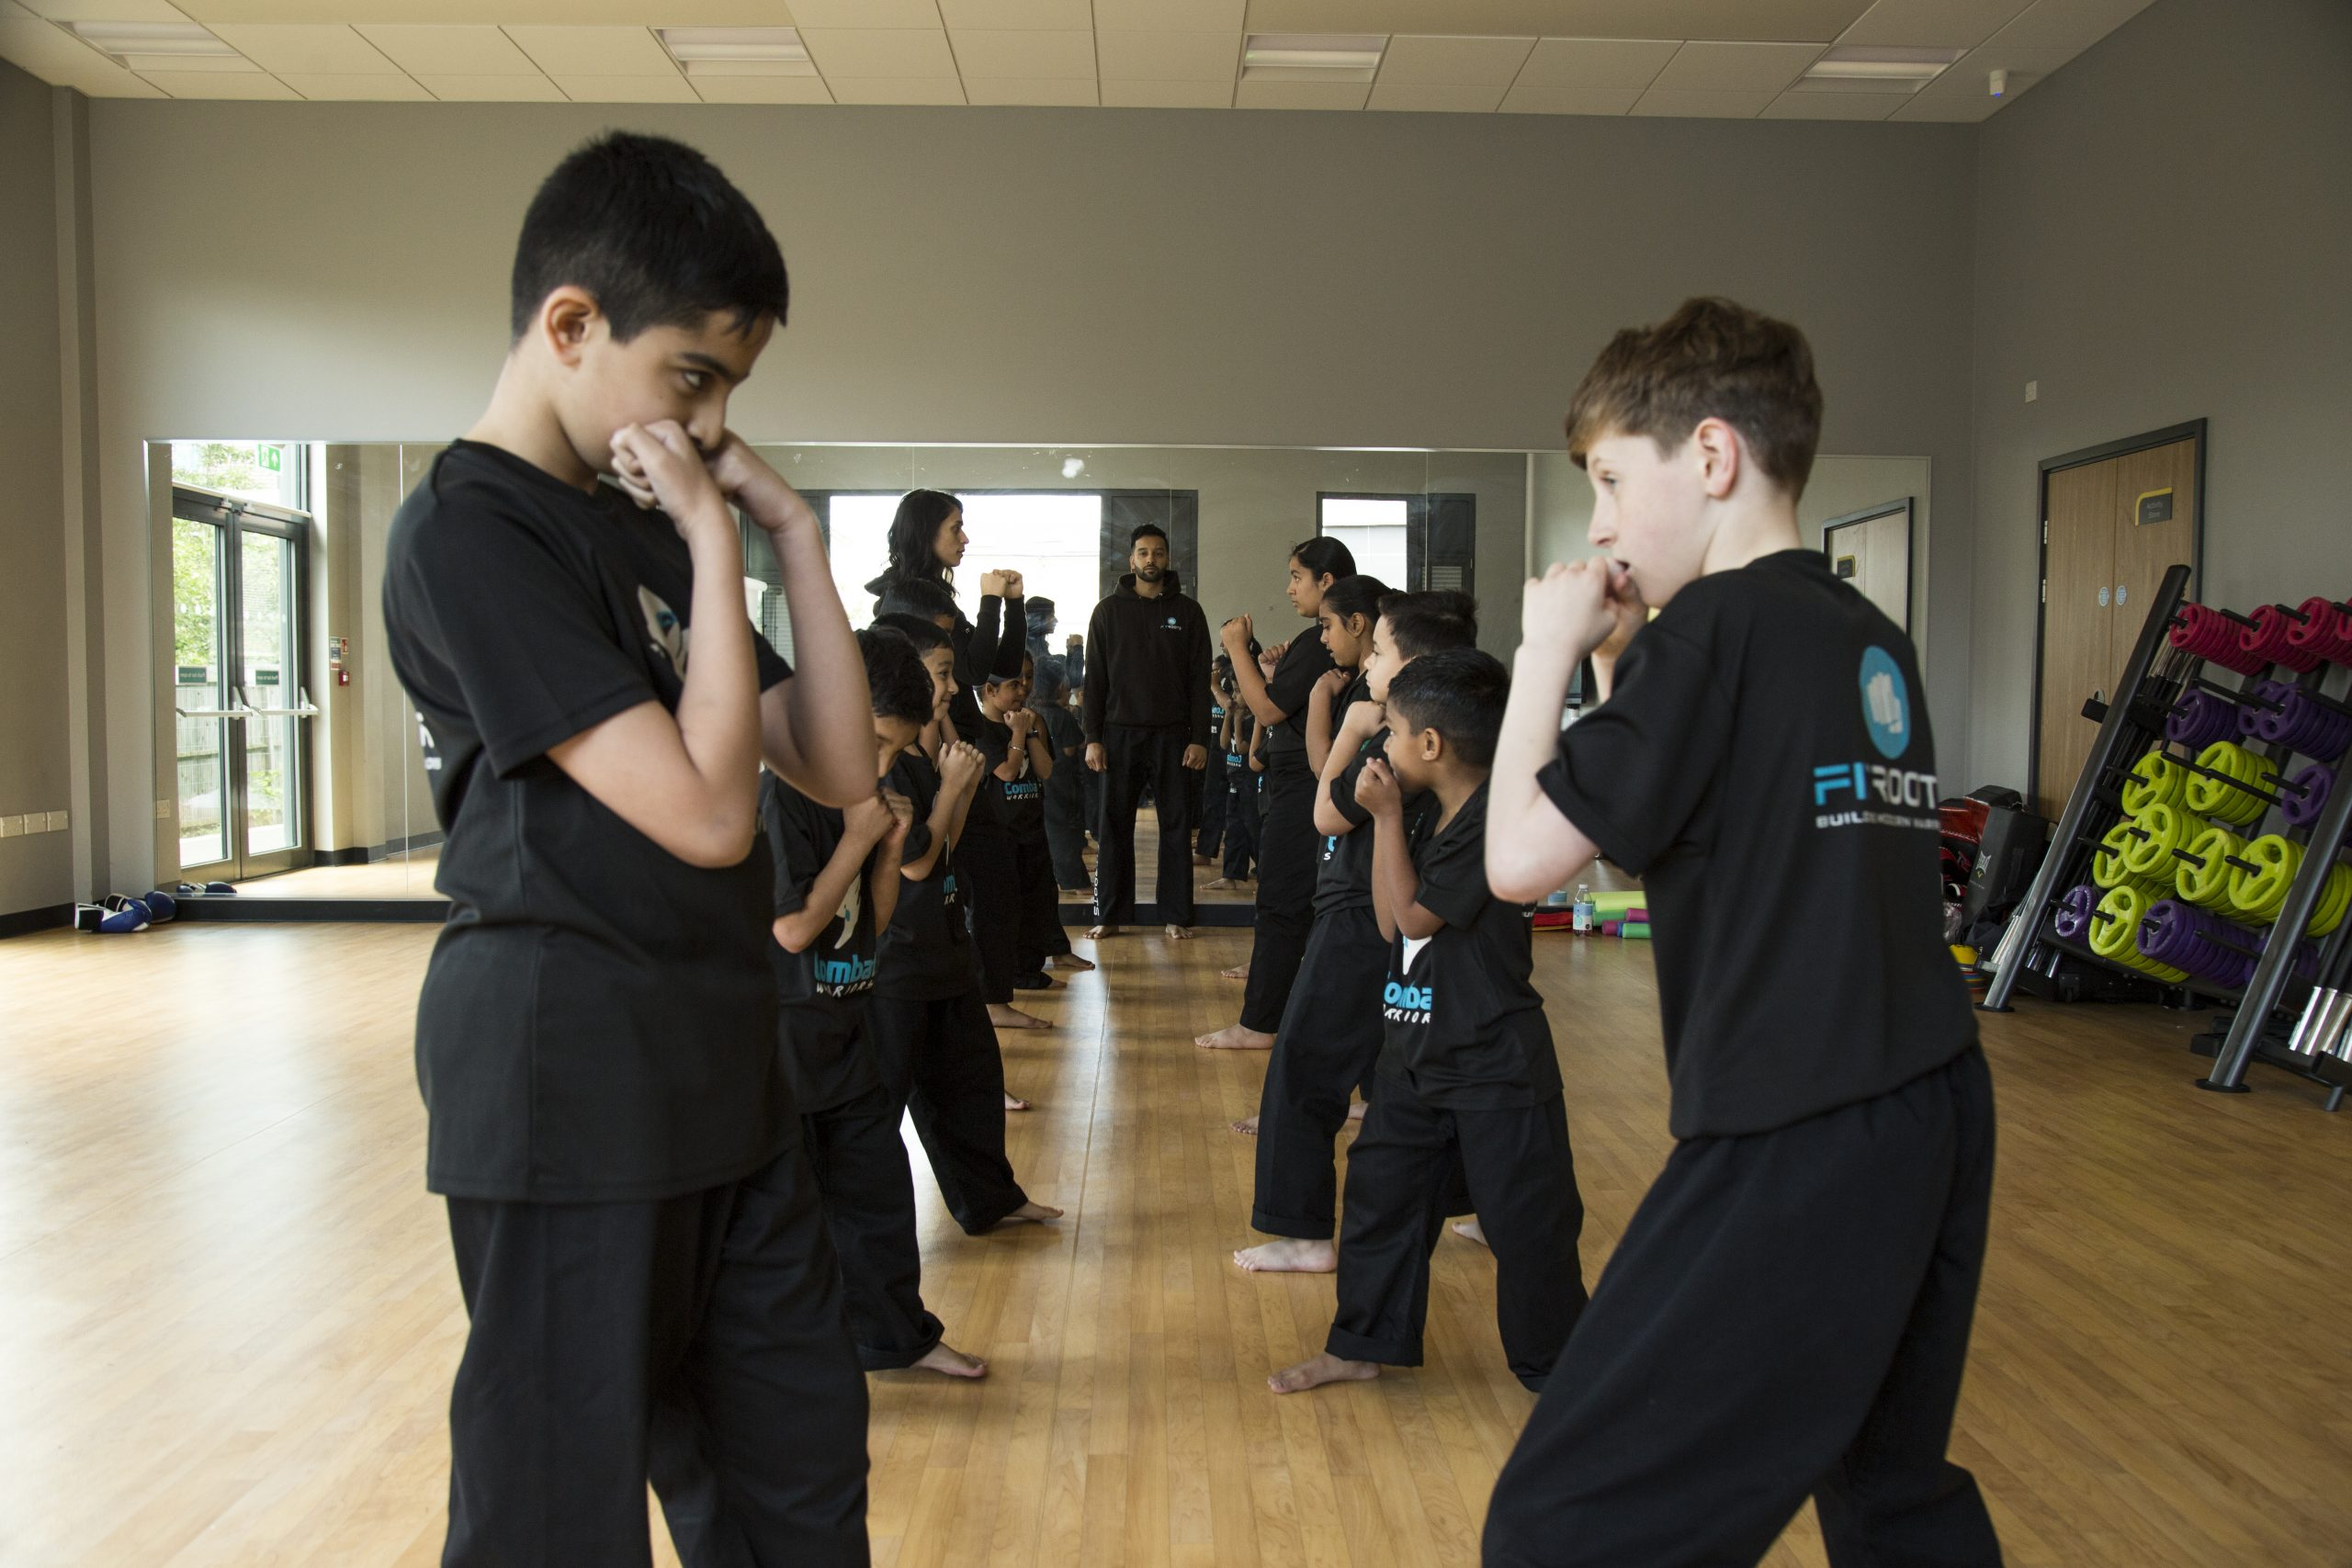 Kid's Martial Arts and Kickboxing Class at FitRoots